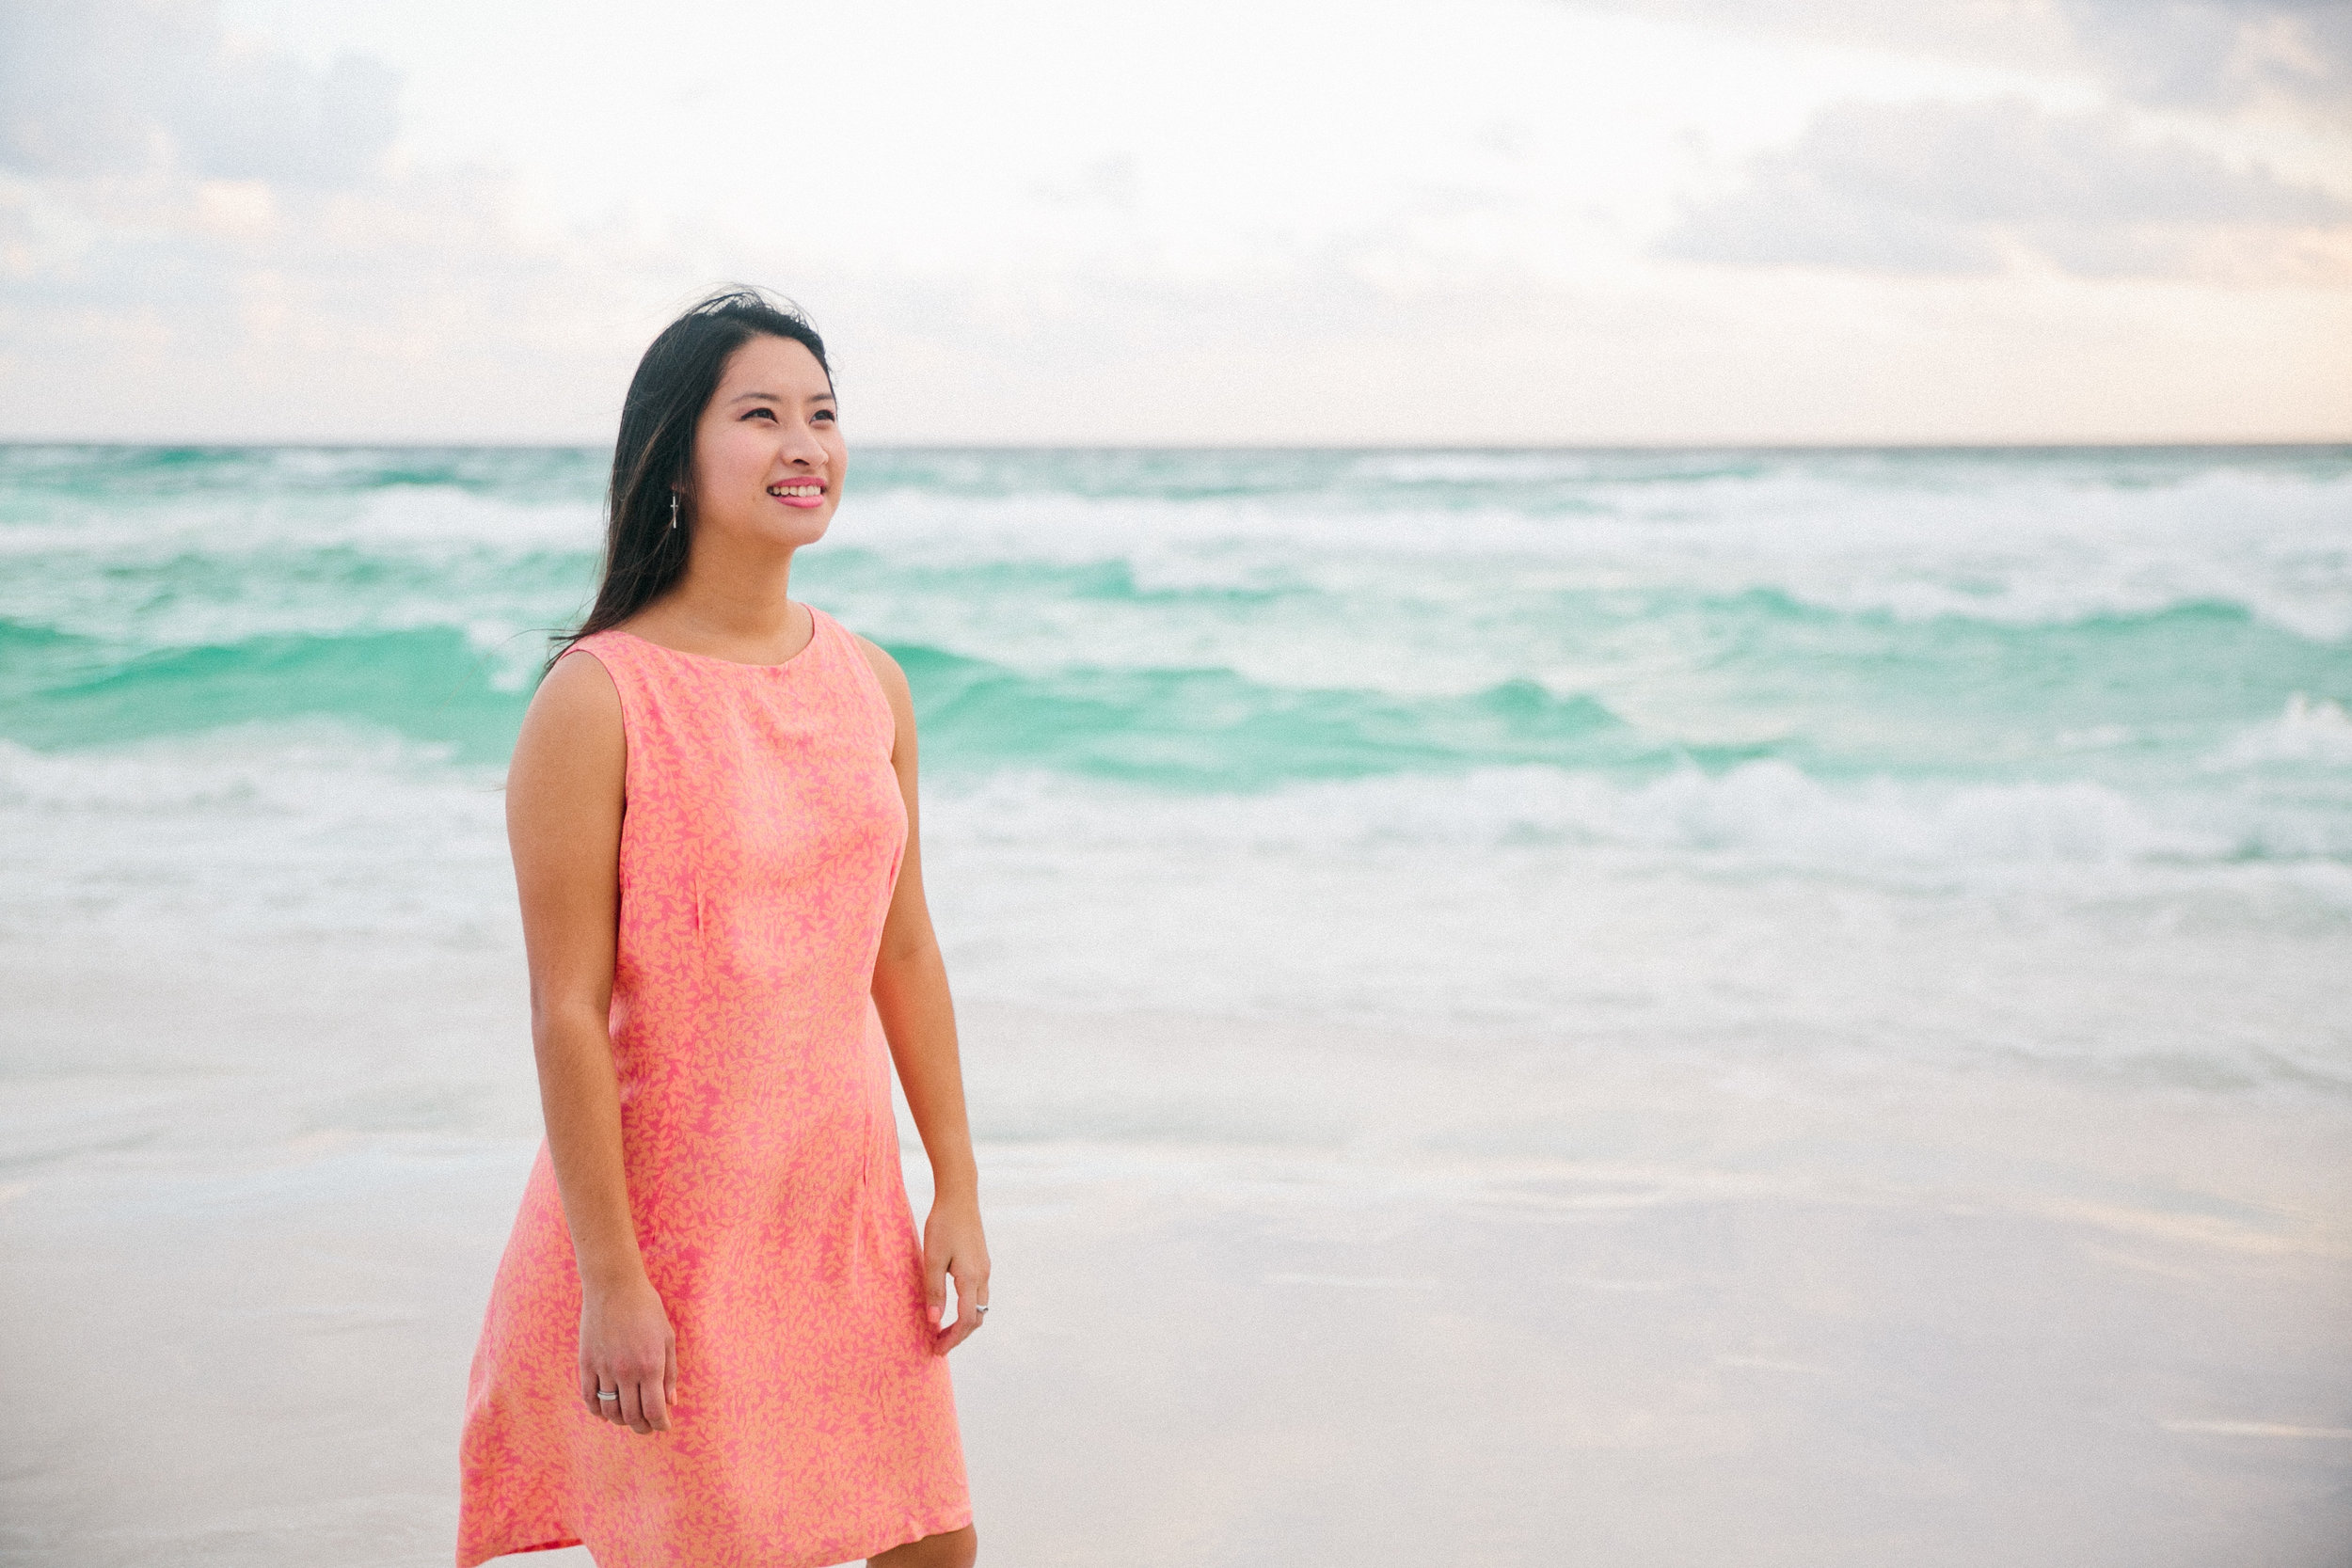 We took photos for Serene's new album at the Sandestin Resort beach in Destin, Florida. A storm was just about to roll through, so the waves were extra choppy (and colorful!).